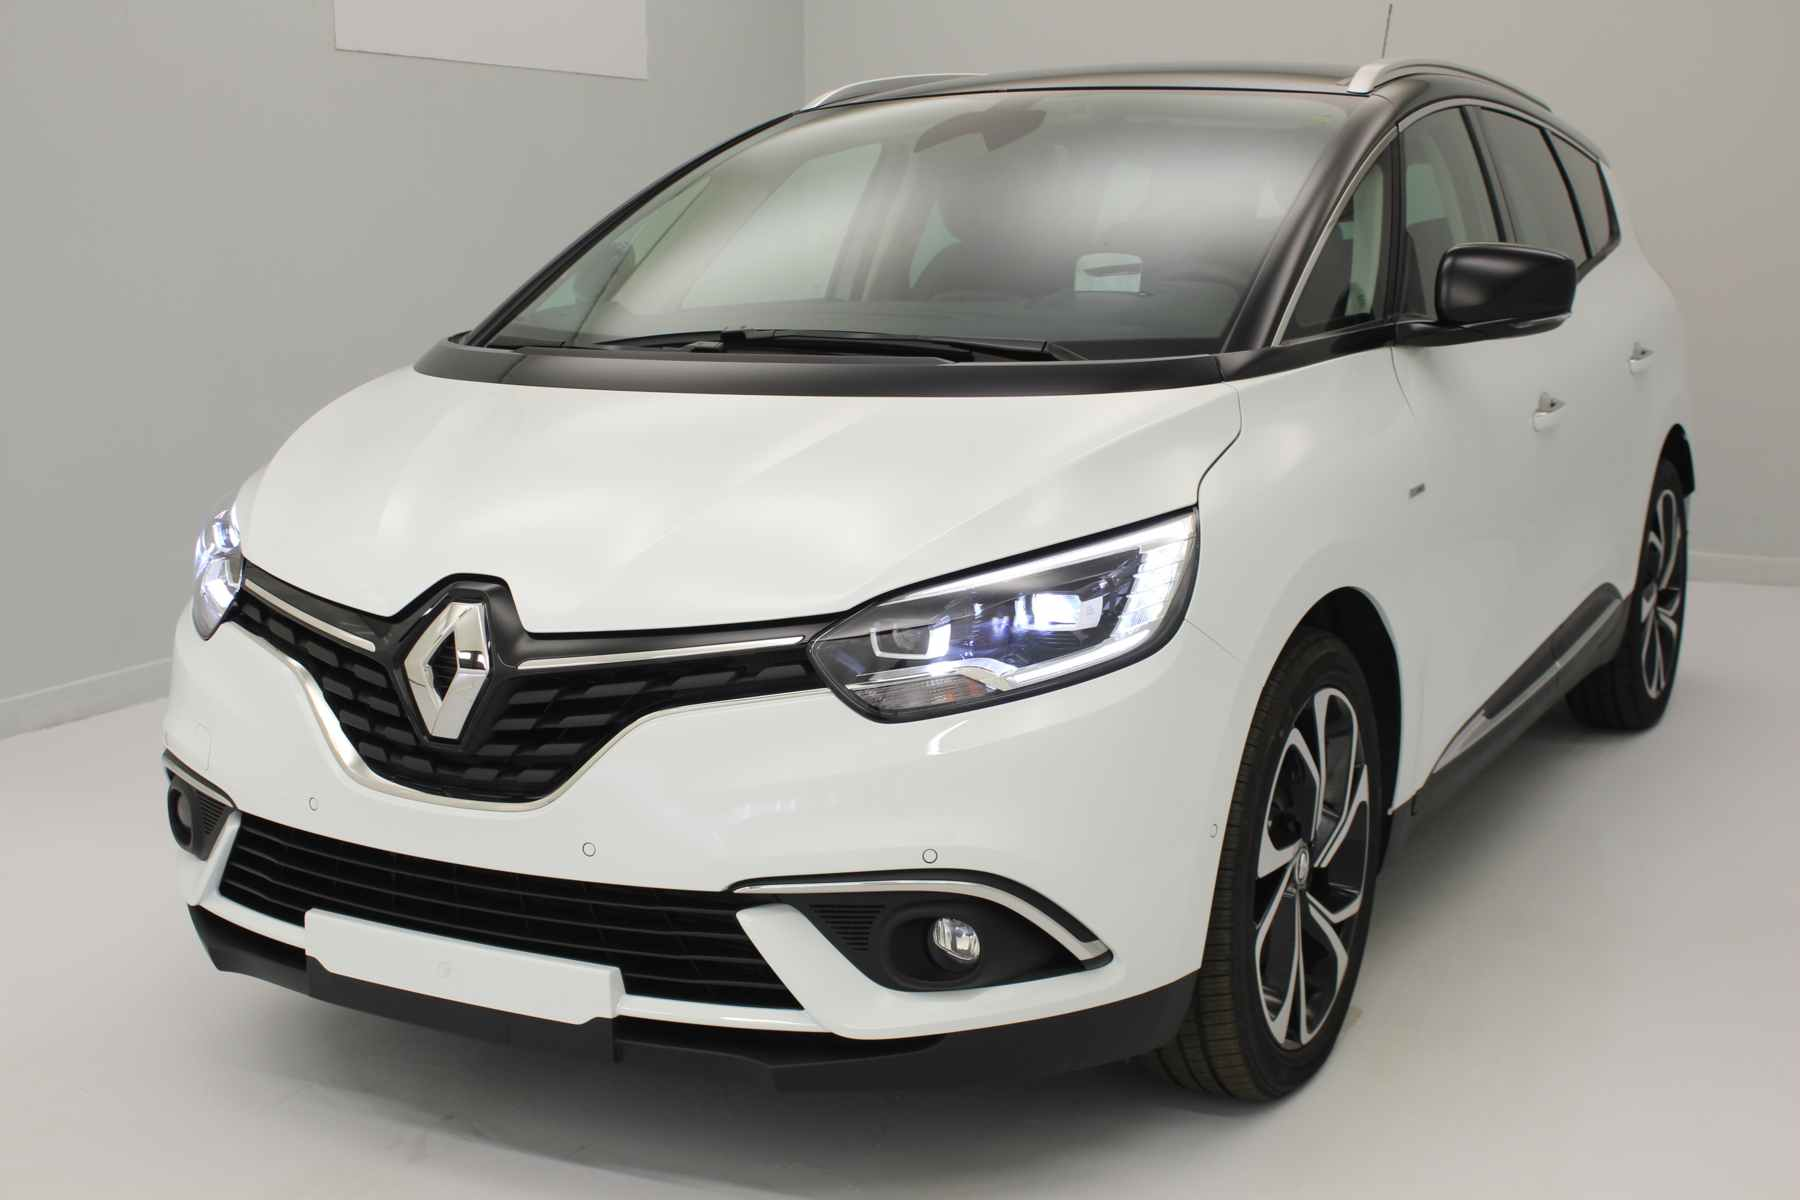 RENAULT Grand Scénic Nouveau TCe 130 Energy Intens  Blanc Glacier Toit Noir + Easy Park Assist + Bose Sound System avec options